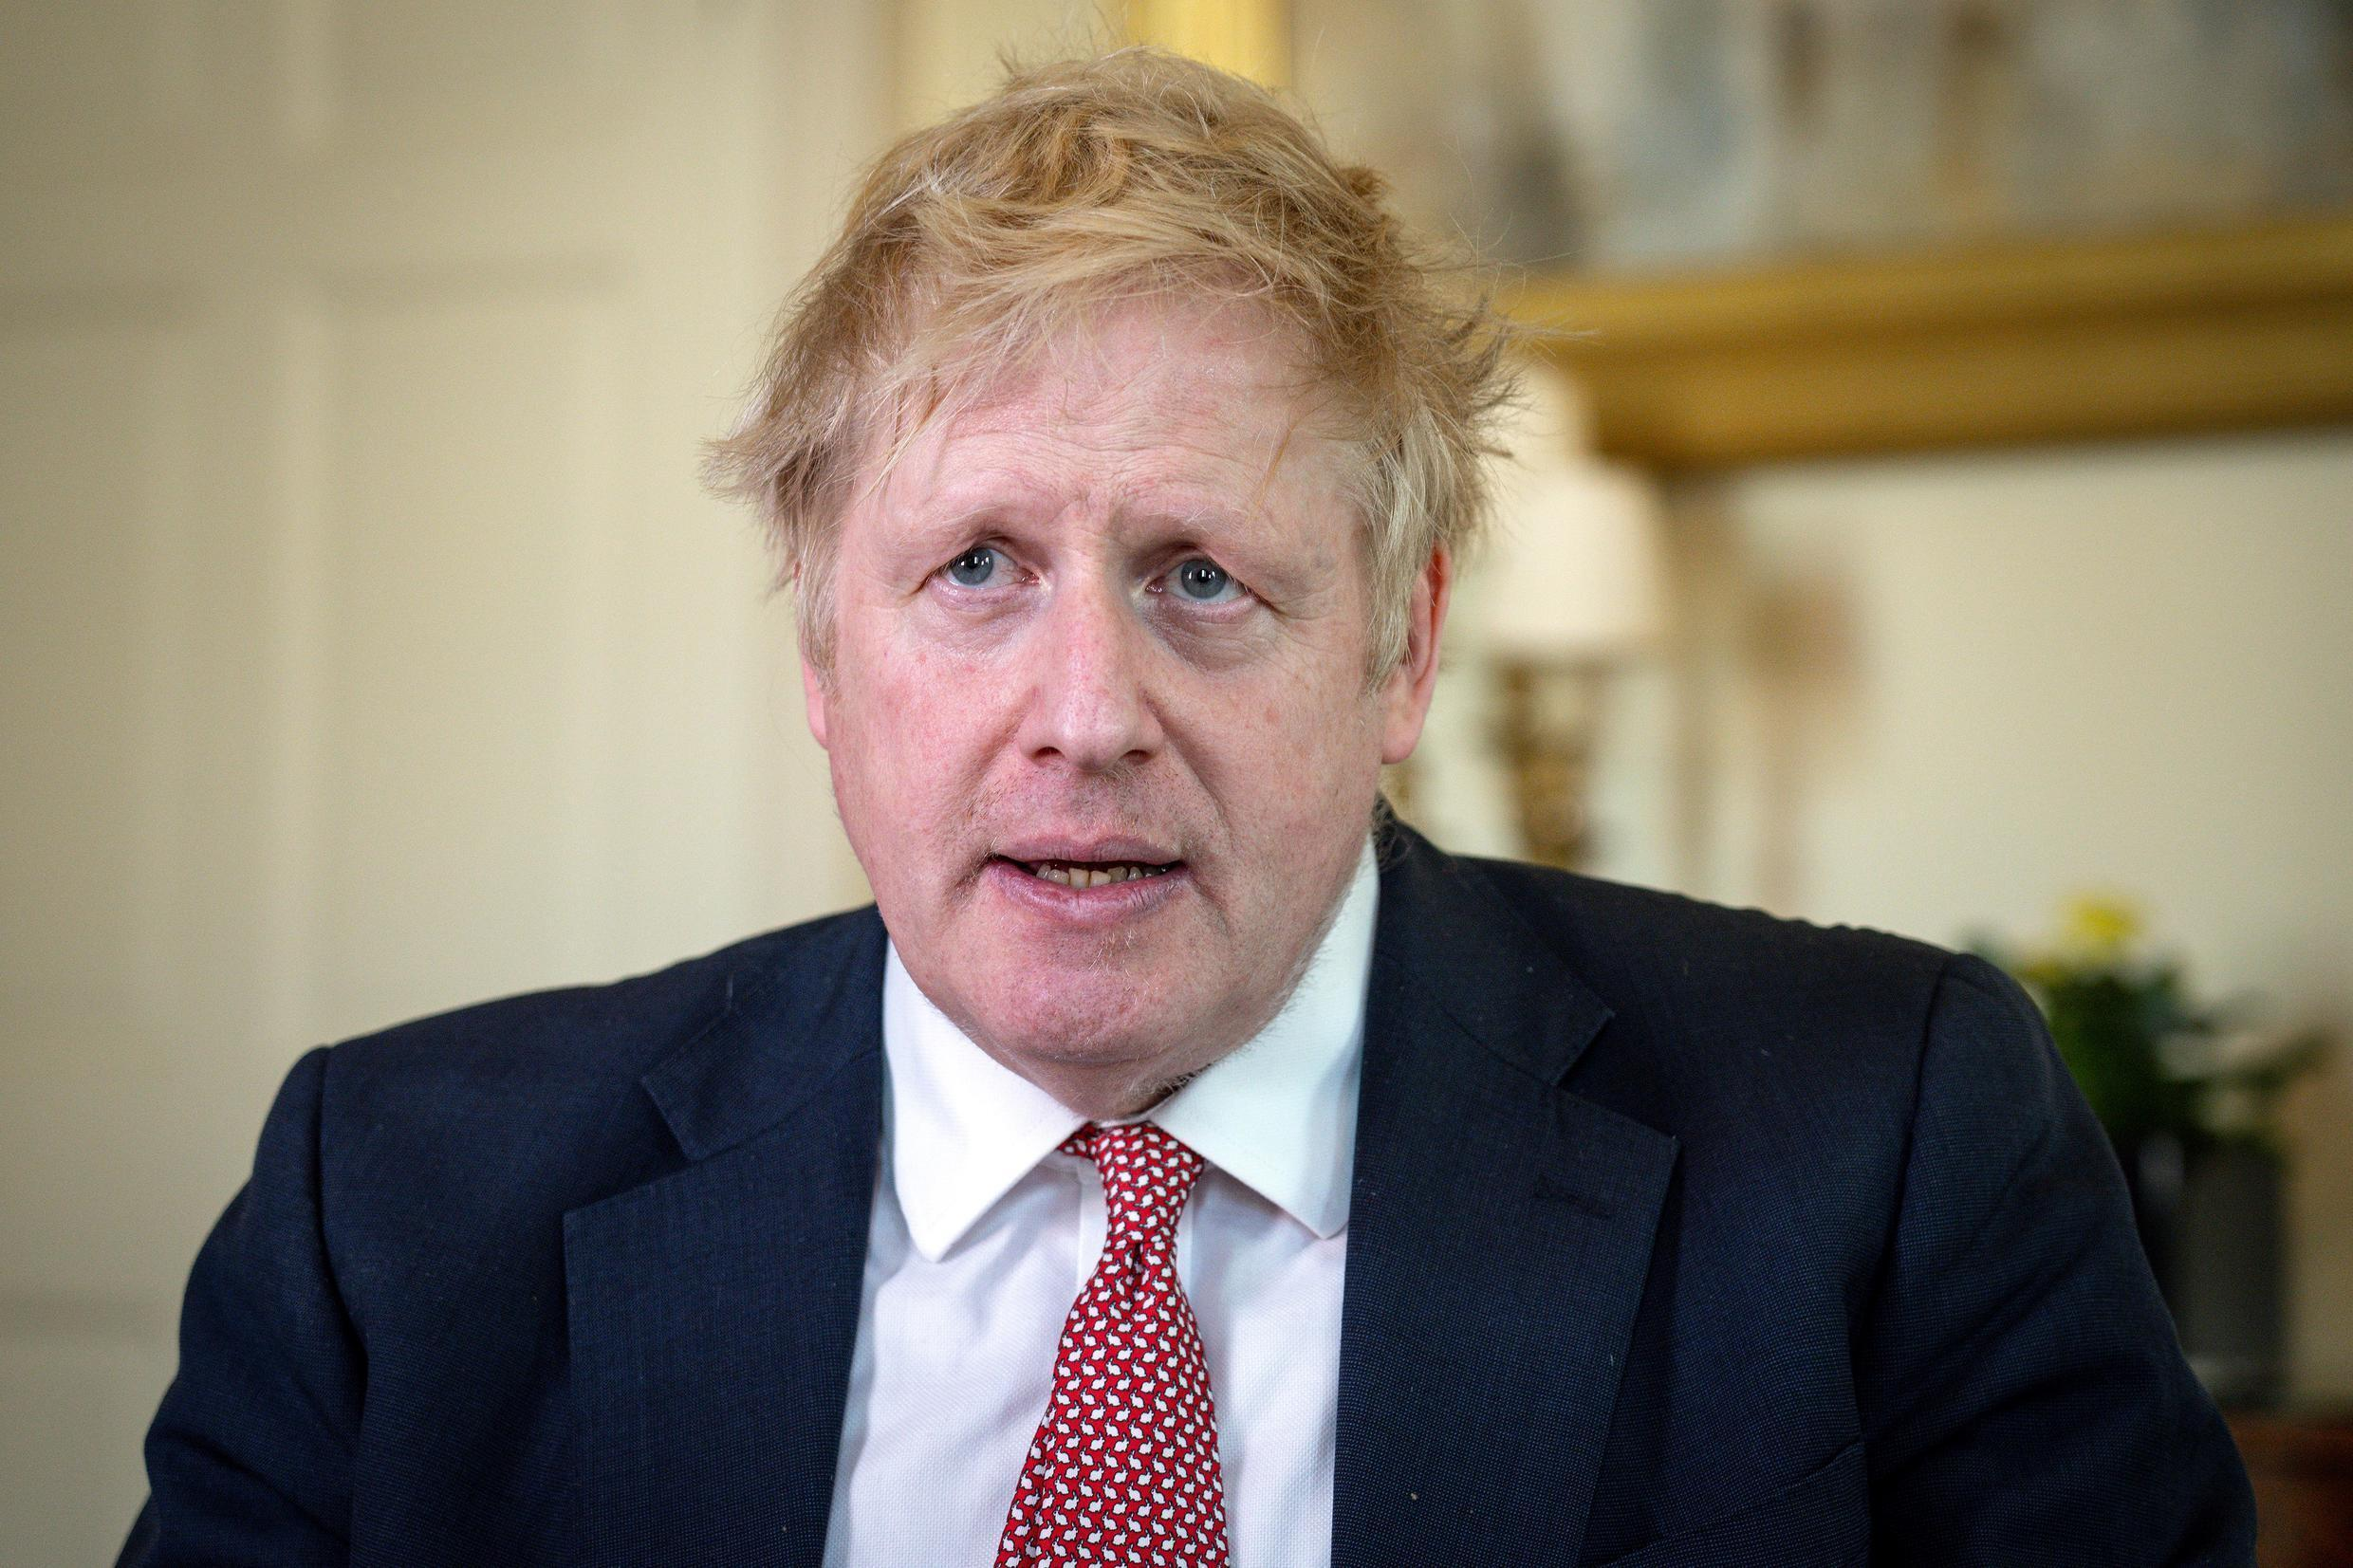 Prime Minister Boris Johnson (picture after he was discharged from hospital on April 12) is expected to return to work Monday after recovering from the coronavirus